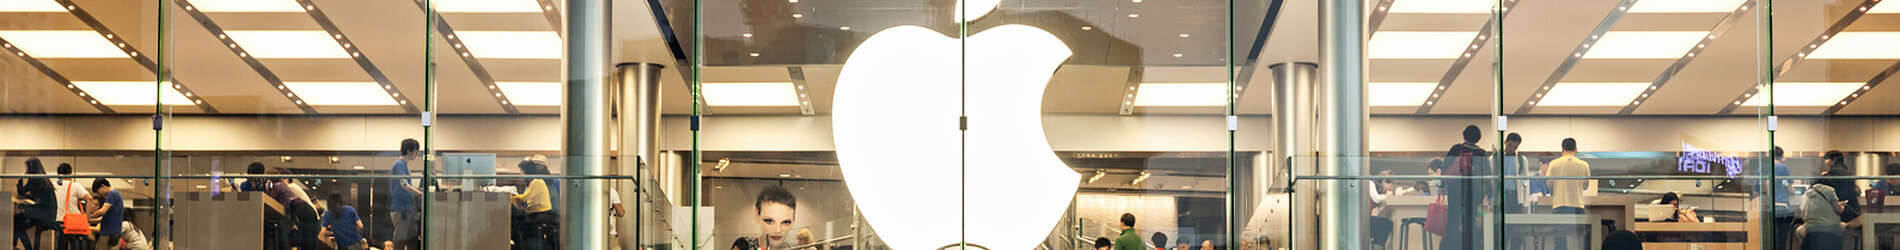 The secret of a great Customer Experience - Apple case study